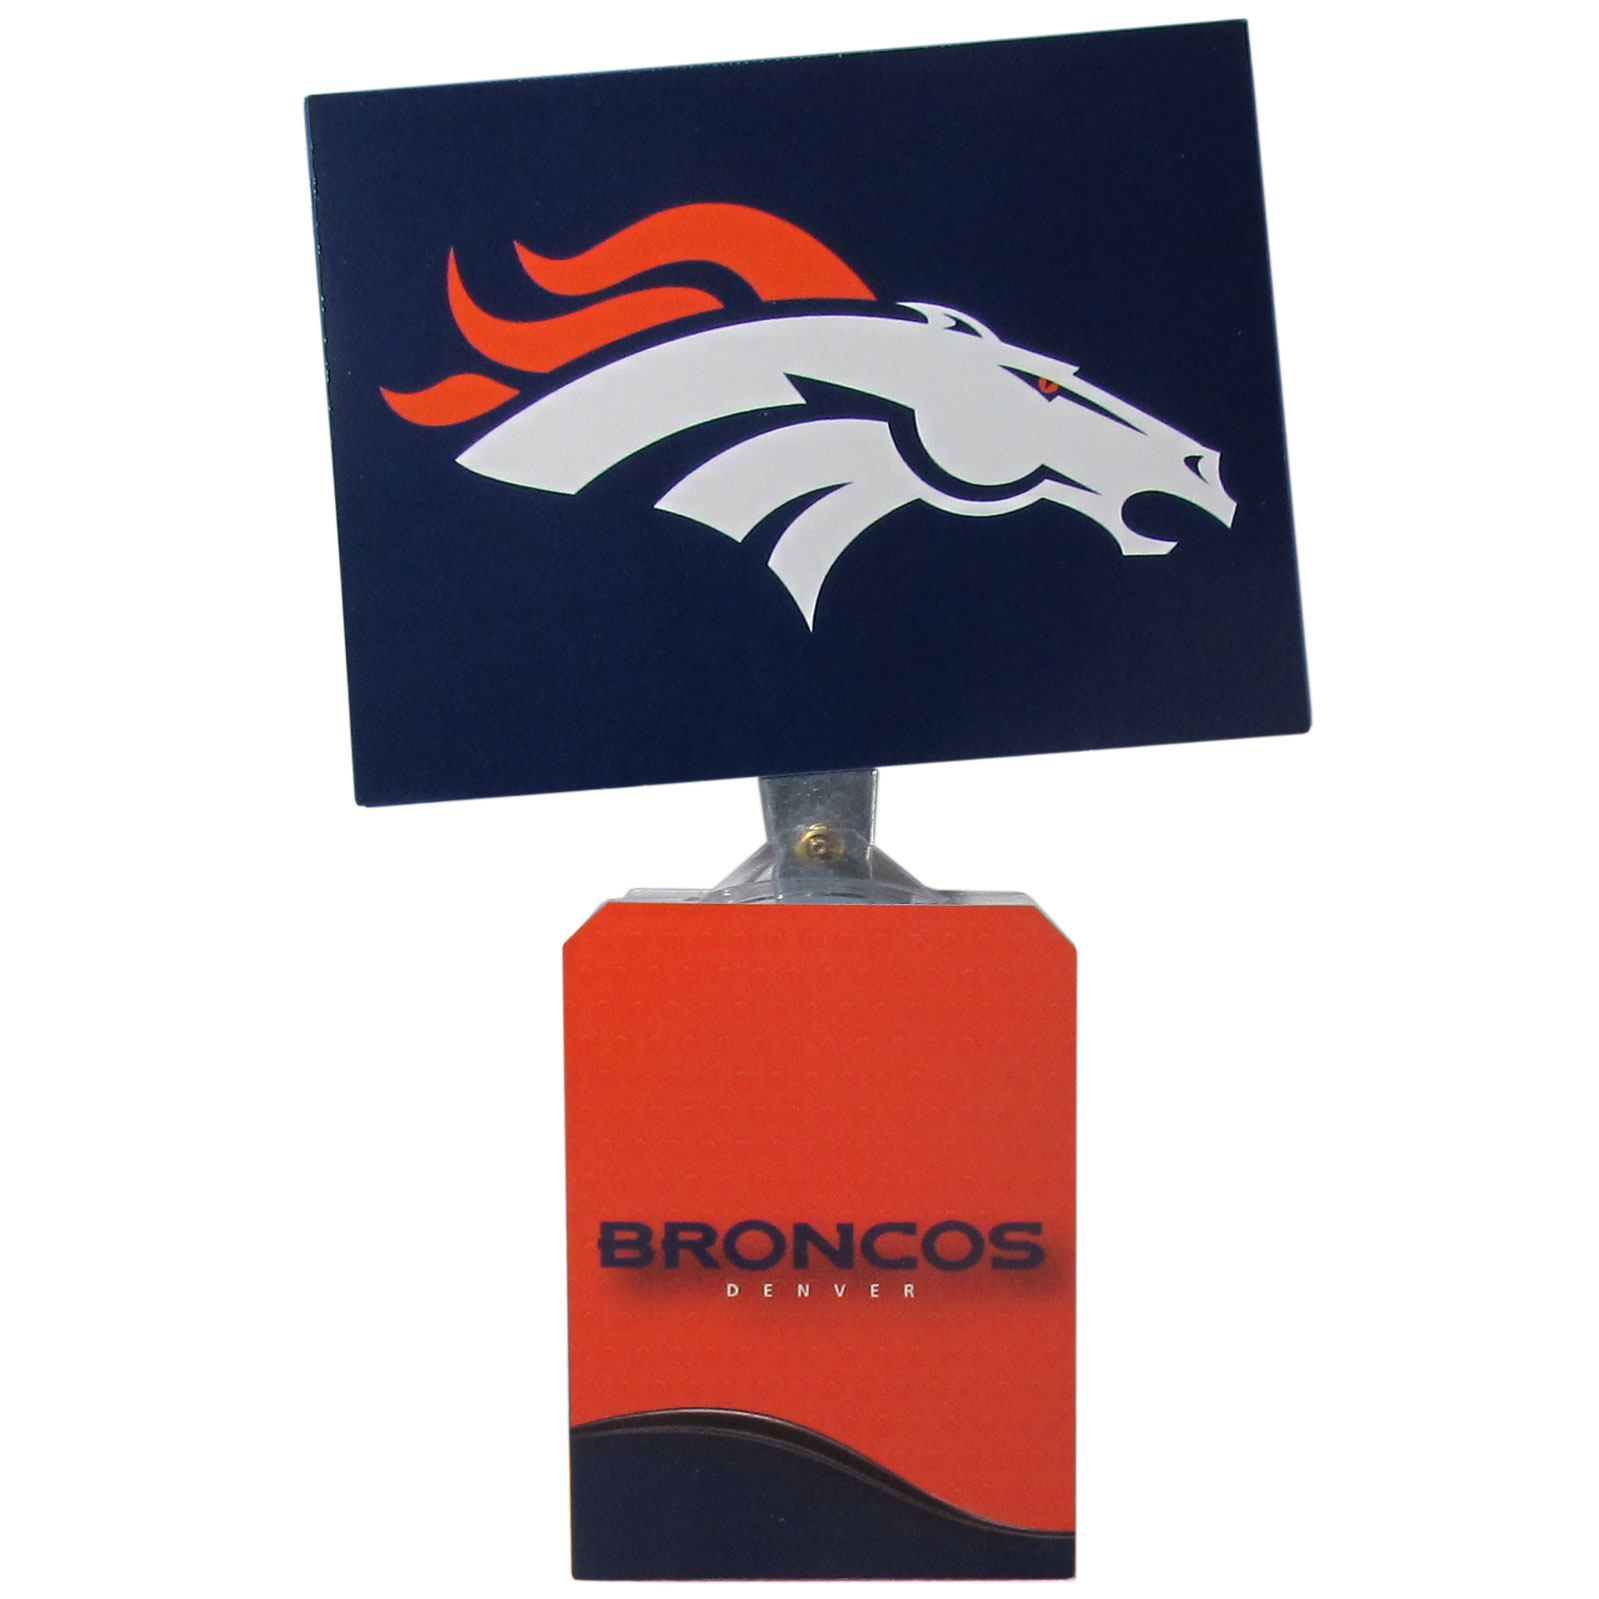 Denver Broncos Solar Flags - Get pumped up on the way to game with Siskiyou's Chicago Bears Denver Broncos Solar Flag that mounts to your dashboard or window. The in-motion solar flag also doubles as decoration for your tailgate or homegate! The base of the flag is 3 inches tall and the flag is 4 inches making the entire in-motion solar flag stand at 7 inches tall. Keep your spirit moving with your favorite team's Solar Flag.